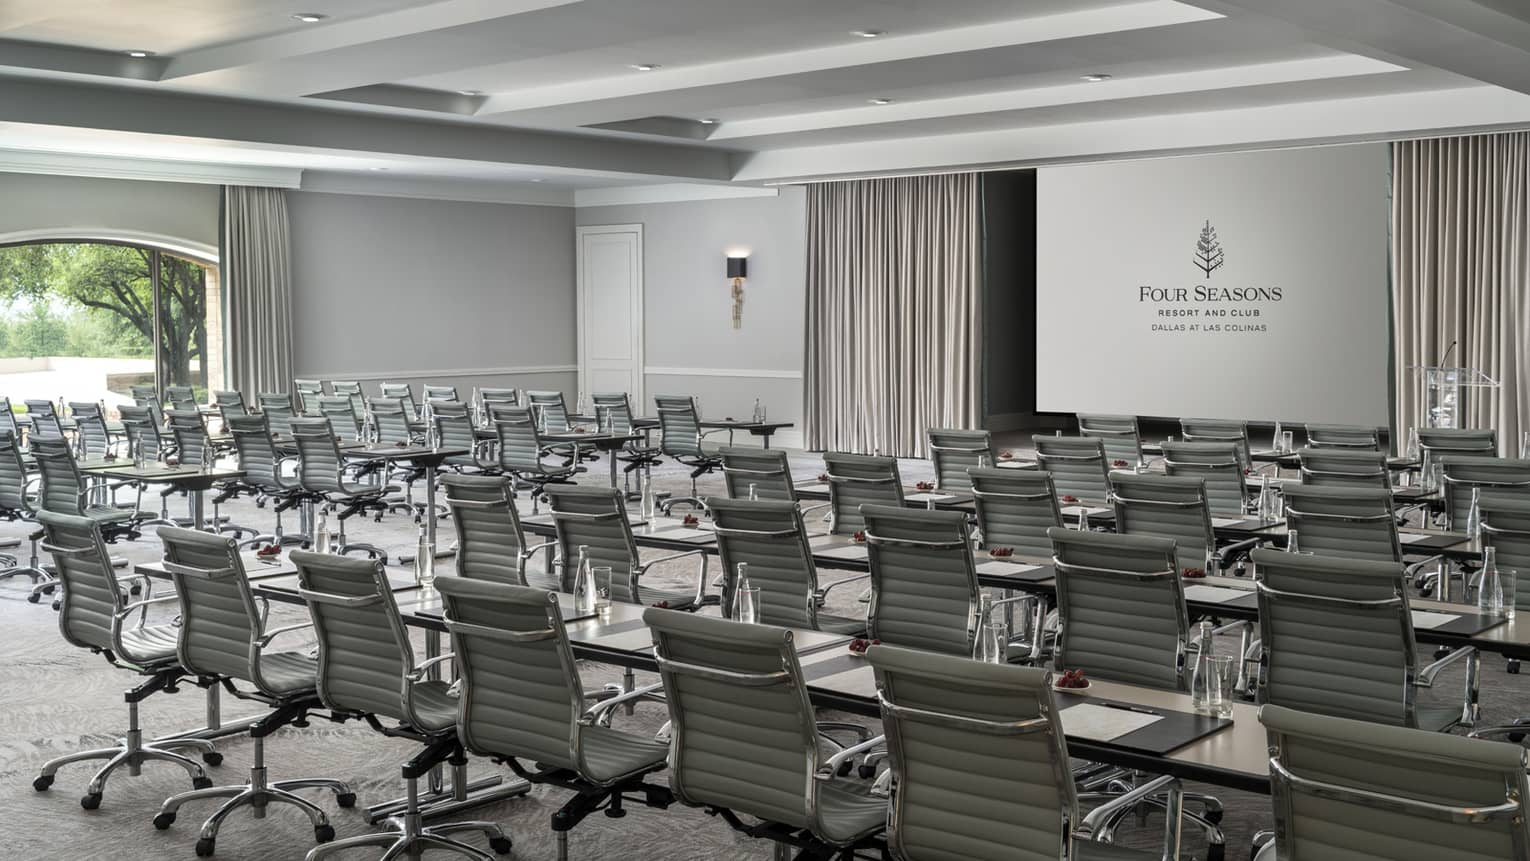 Rows of leather executive swivel chairs at long tables facing screen in large meeting room